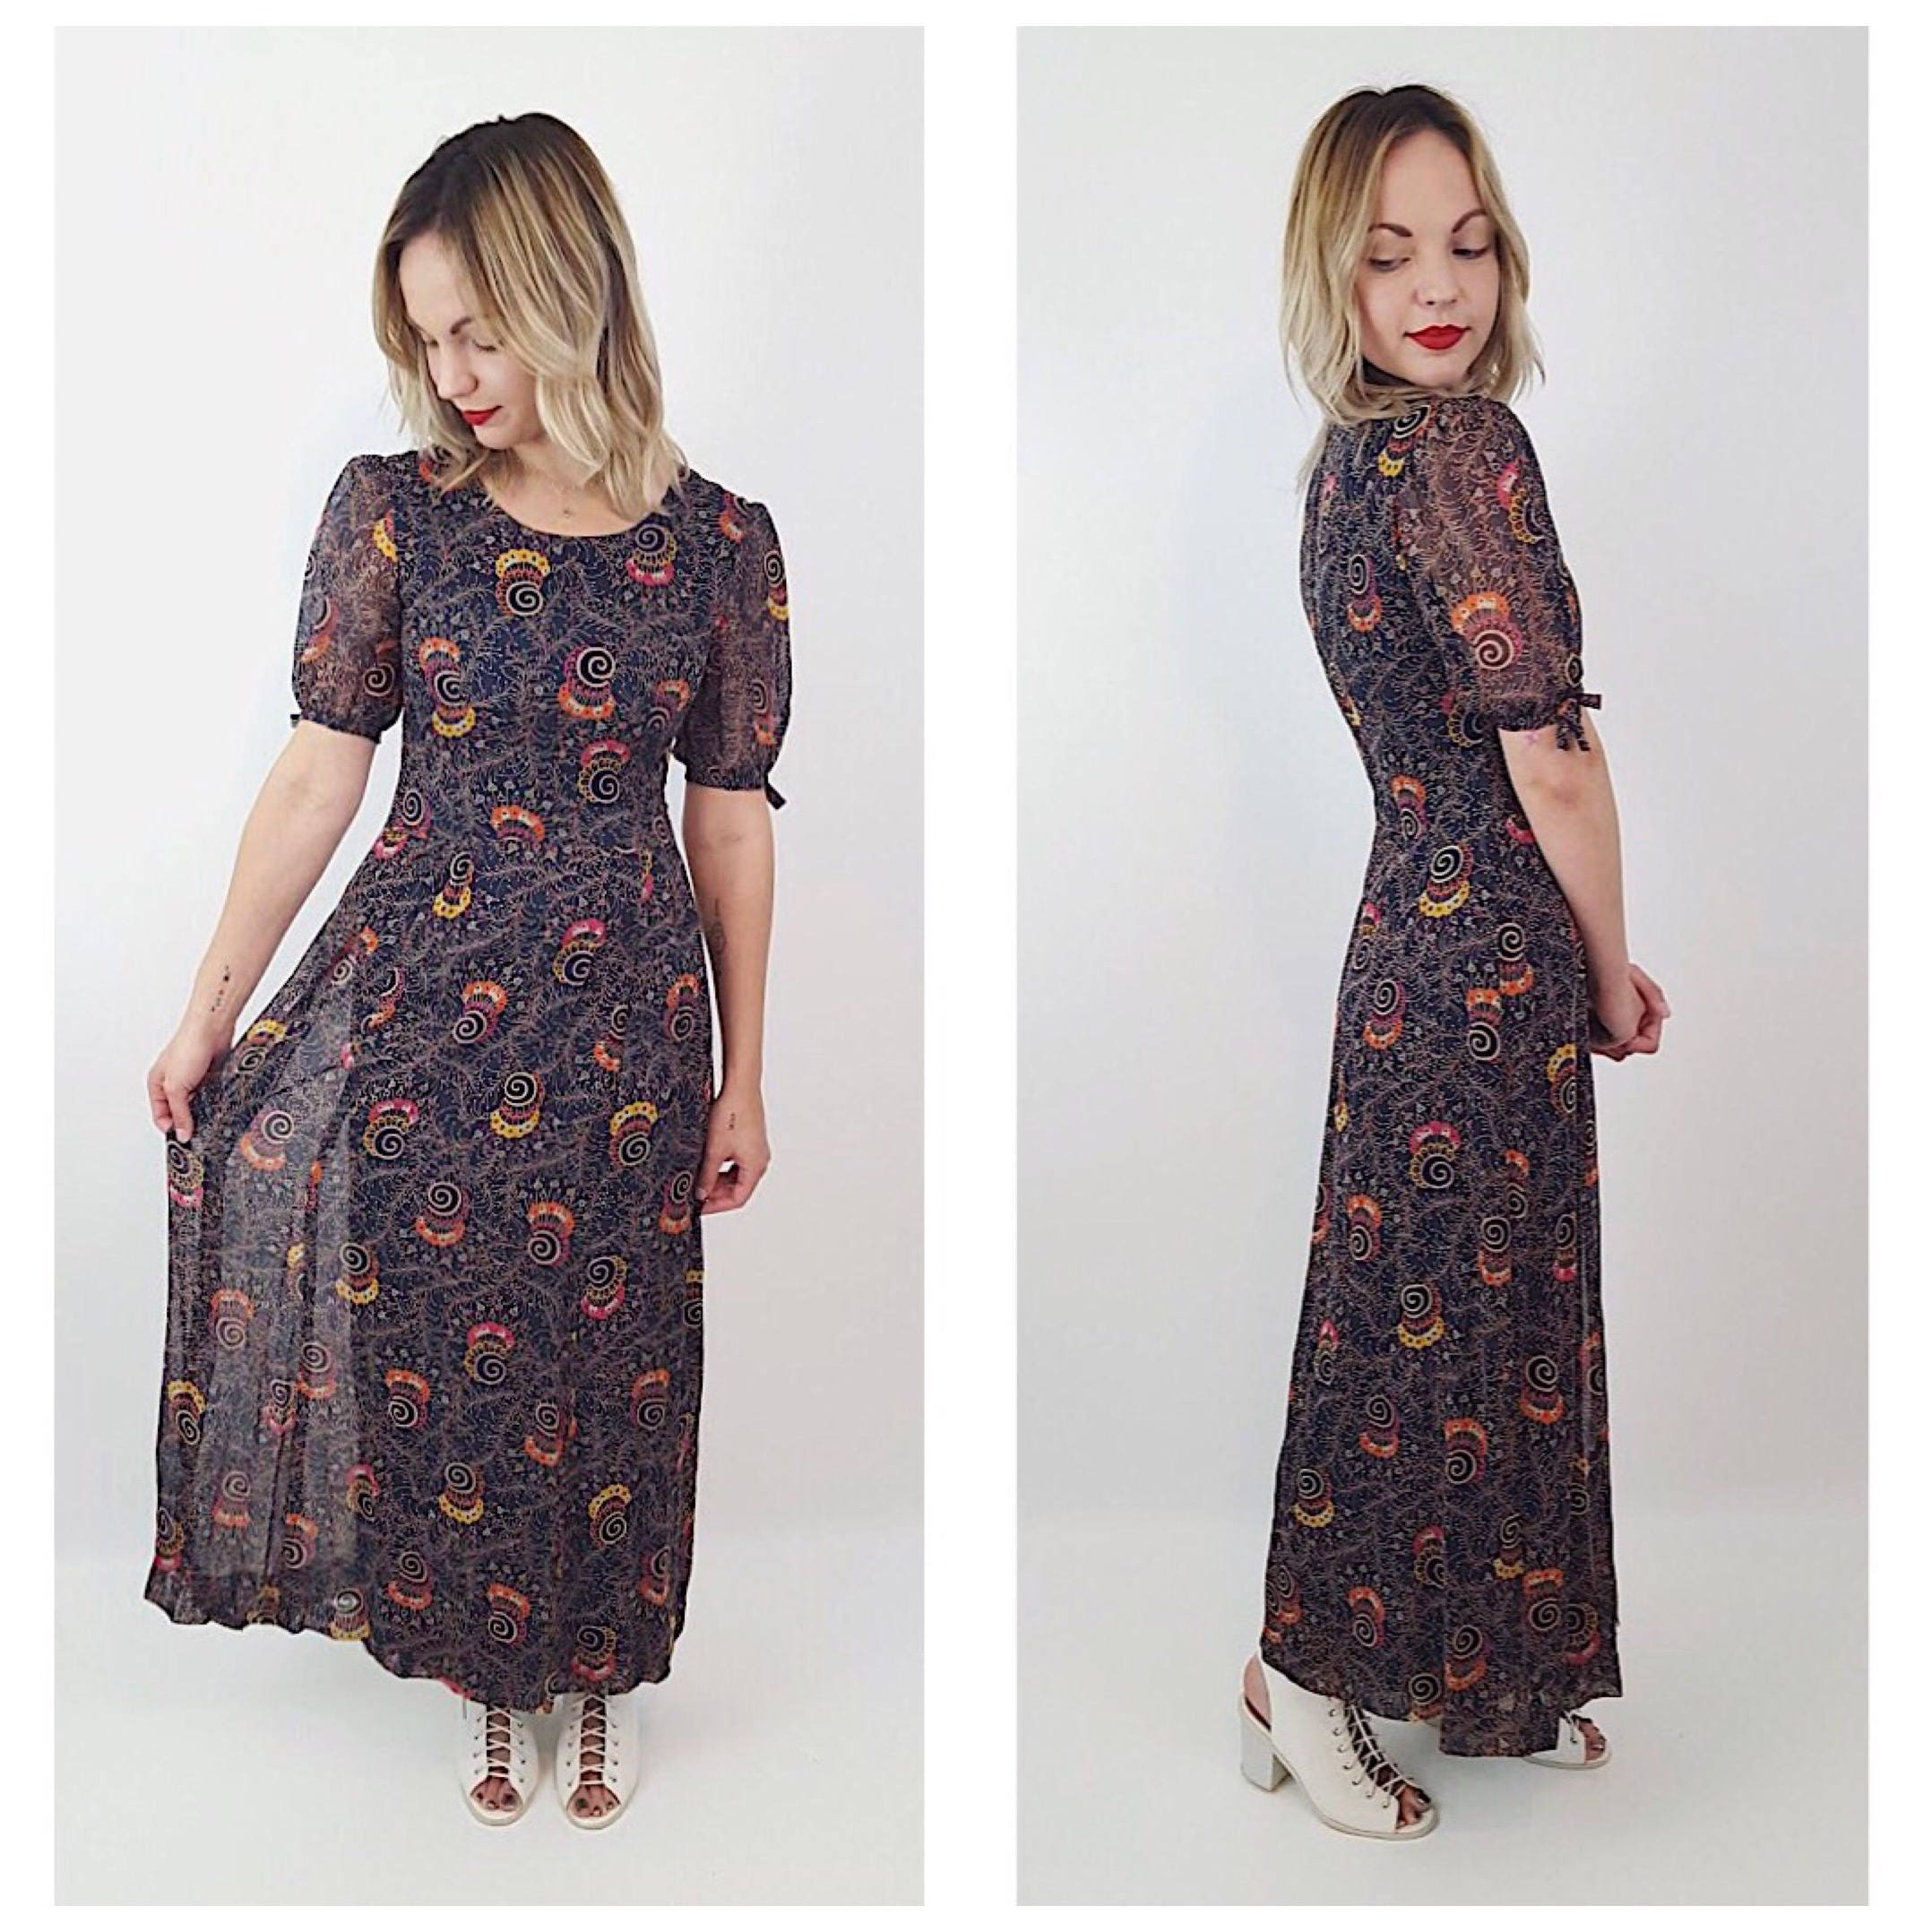 6cb6a2fe8a0f 30 s VINTAGE HANDMADE Floral Maxi Dress - Vtg One of a Kind ...